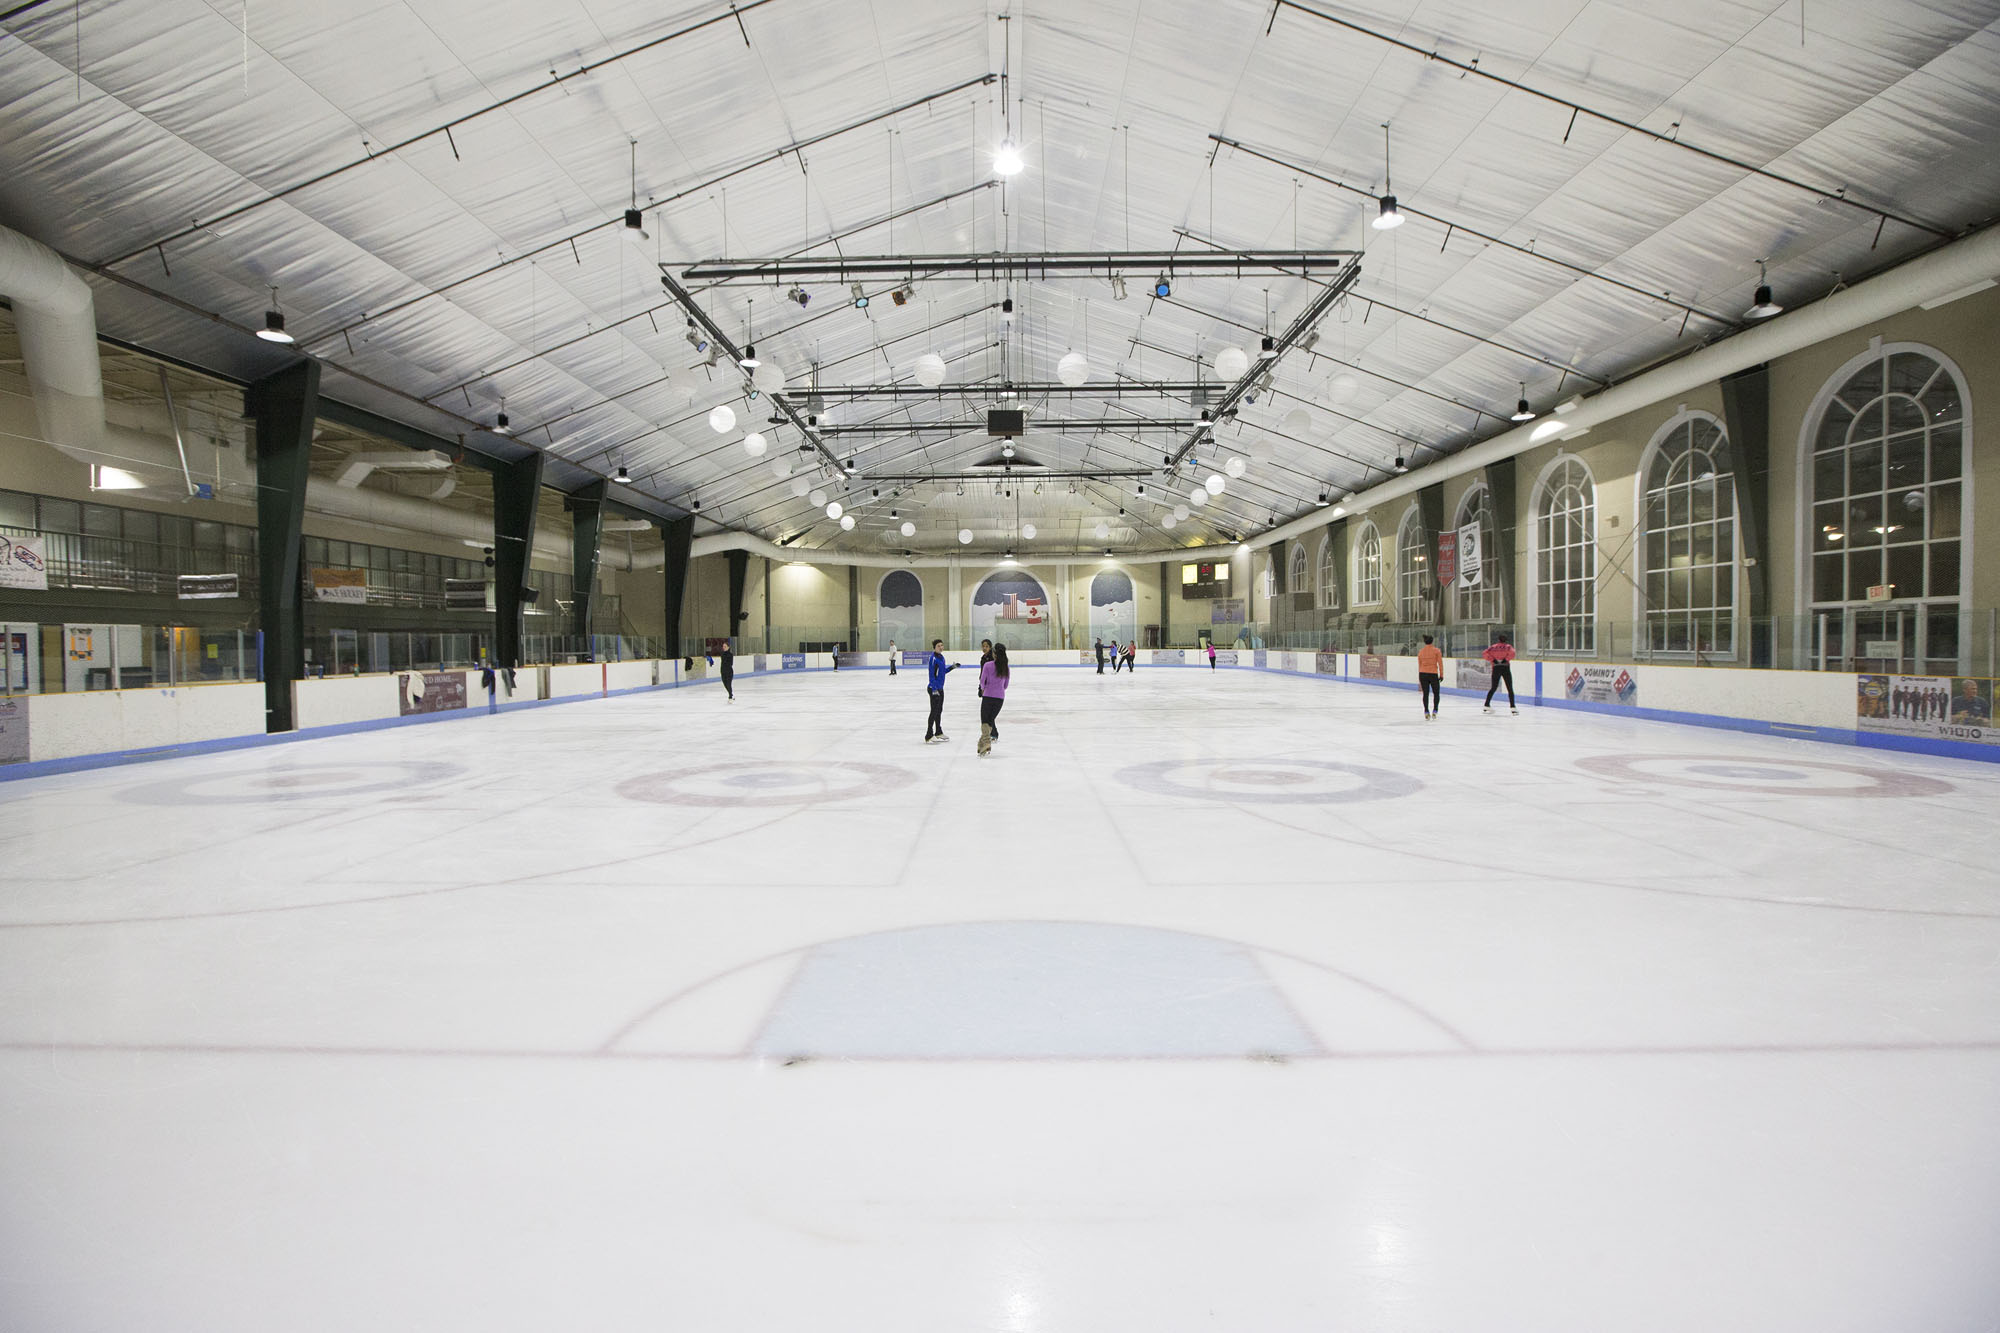 After competing in ice rinks across the United States and Canada, Christopher Ali and Lindsay Slater now call Charlottesville's Main Street Arena home.